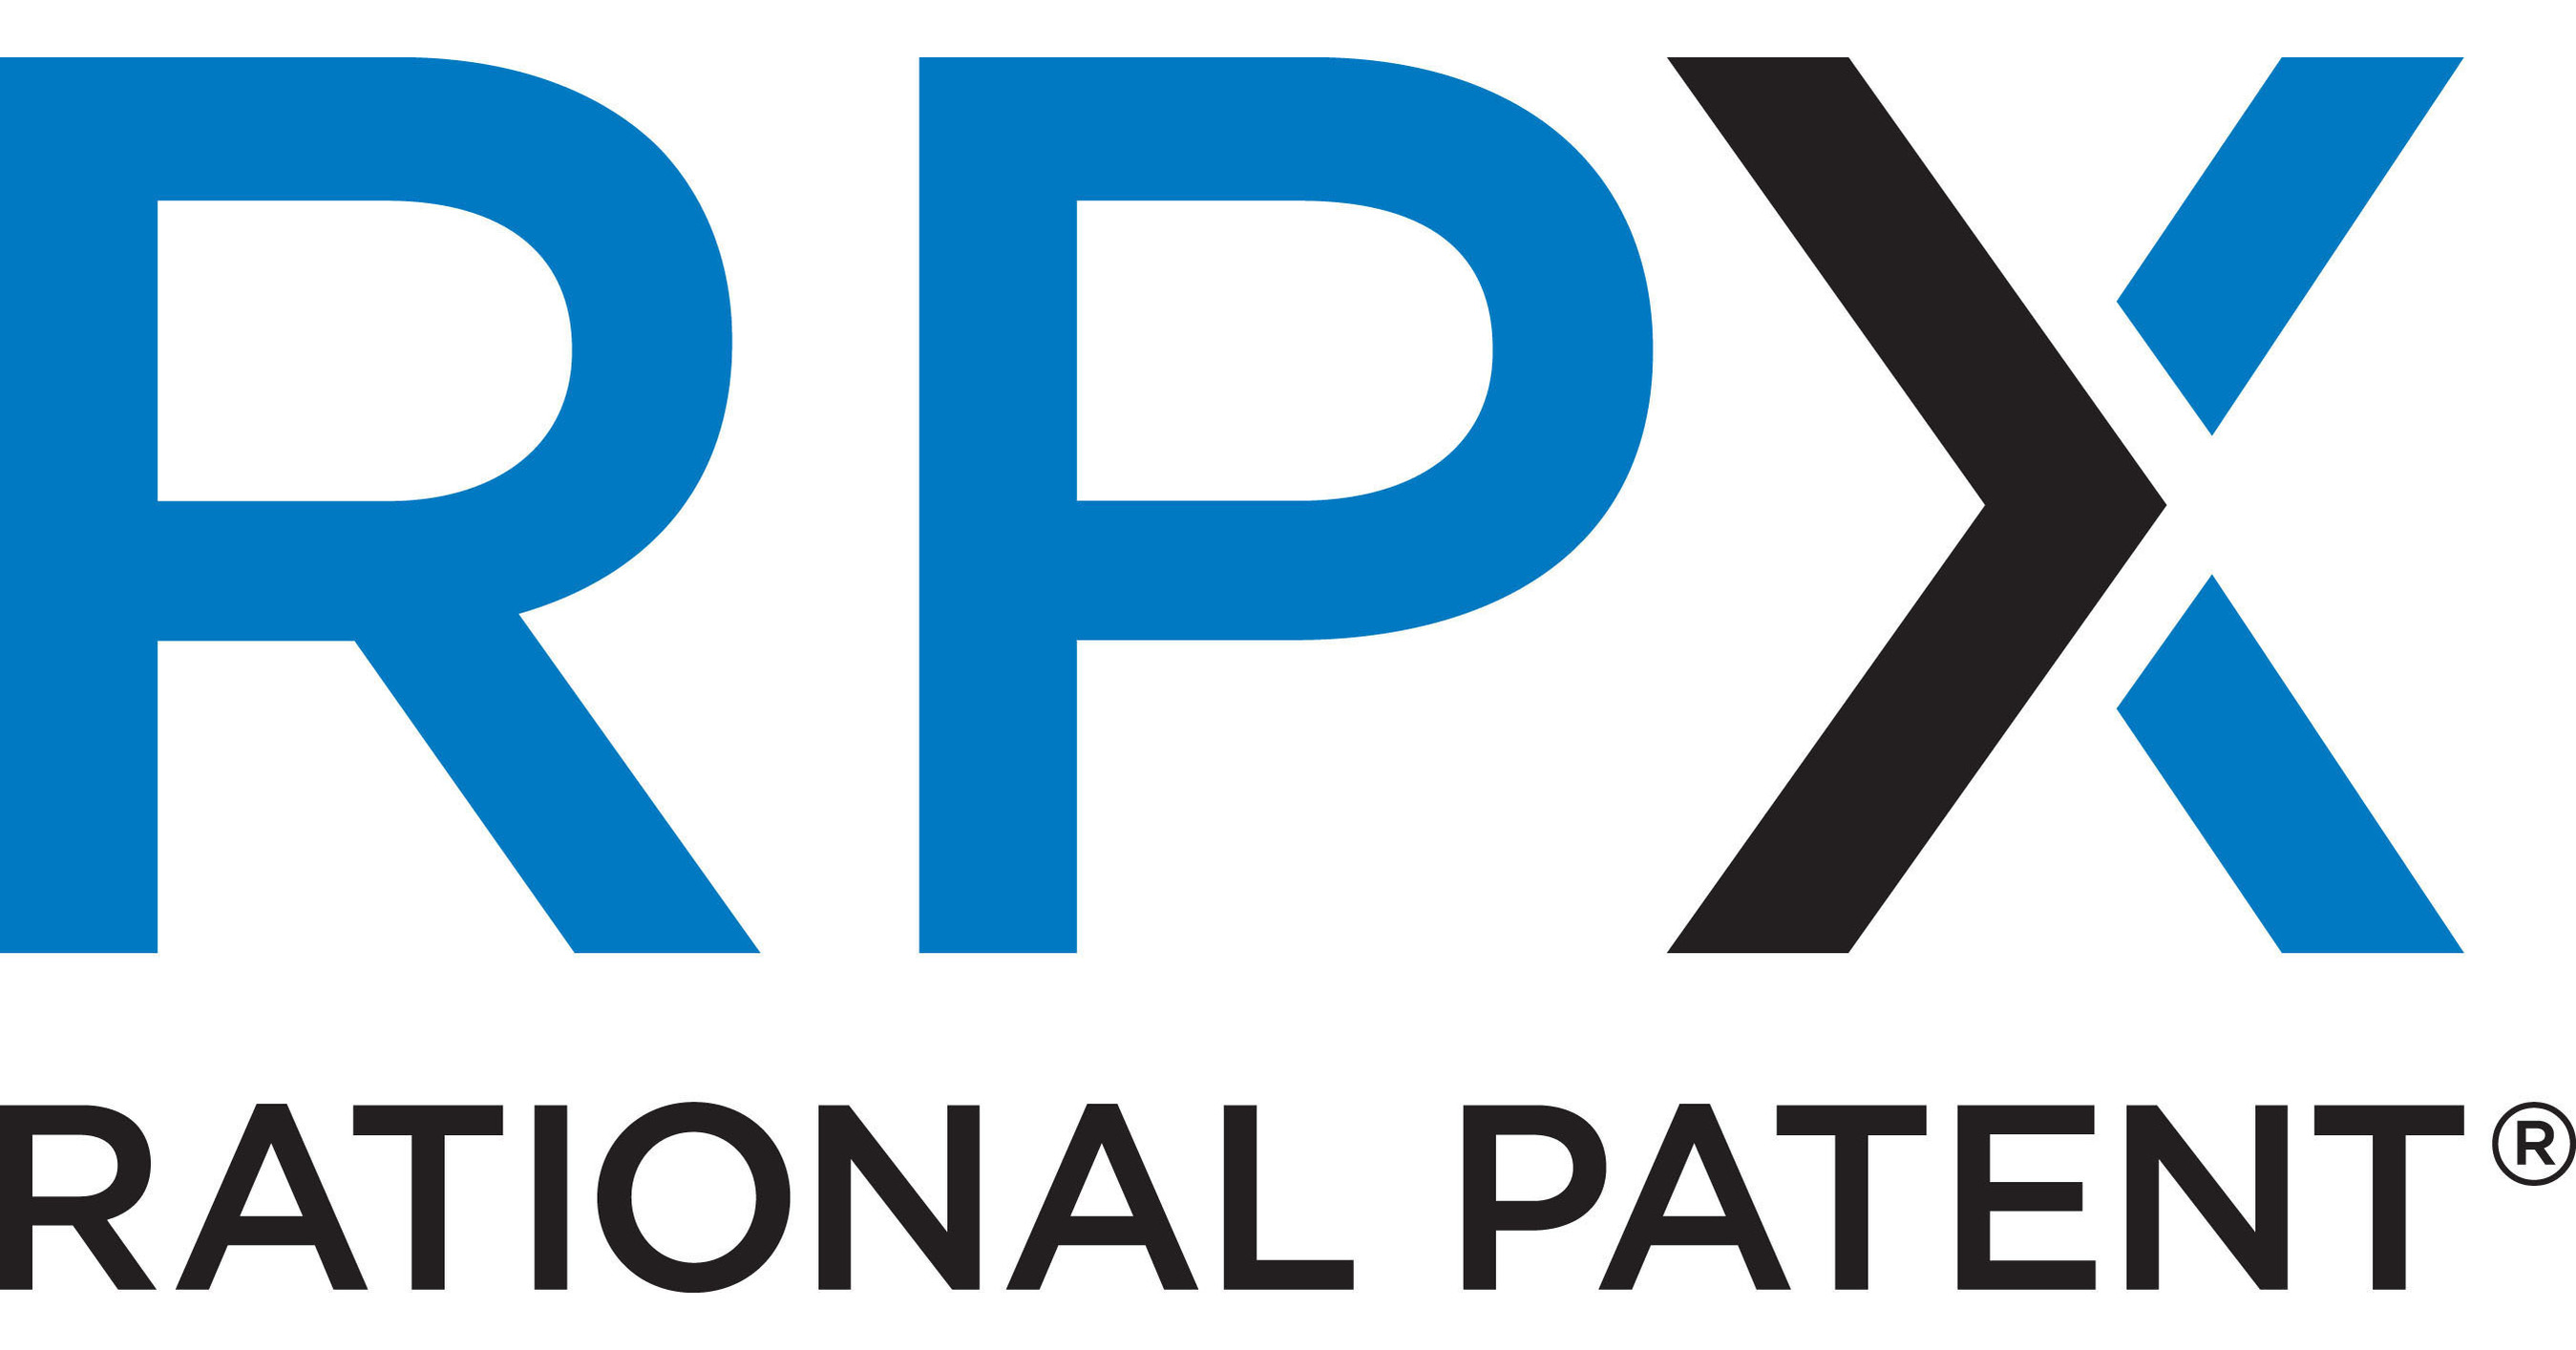 RPX Announces Fourth Quarter and Fiscal 2017 Financial Results